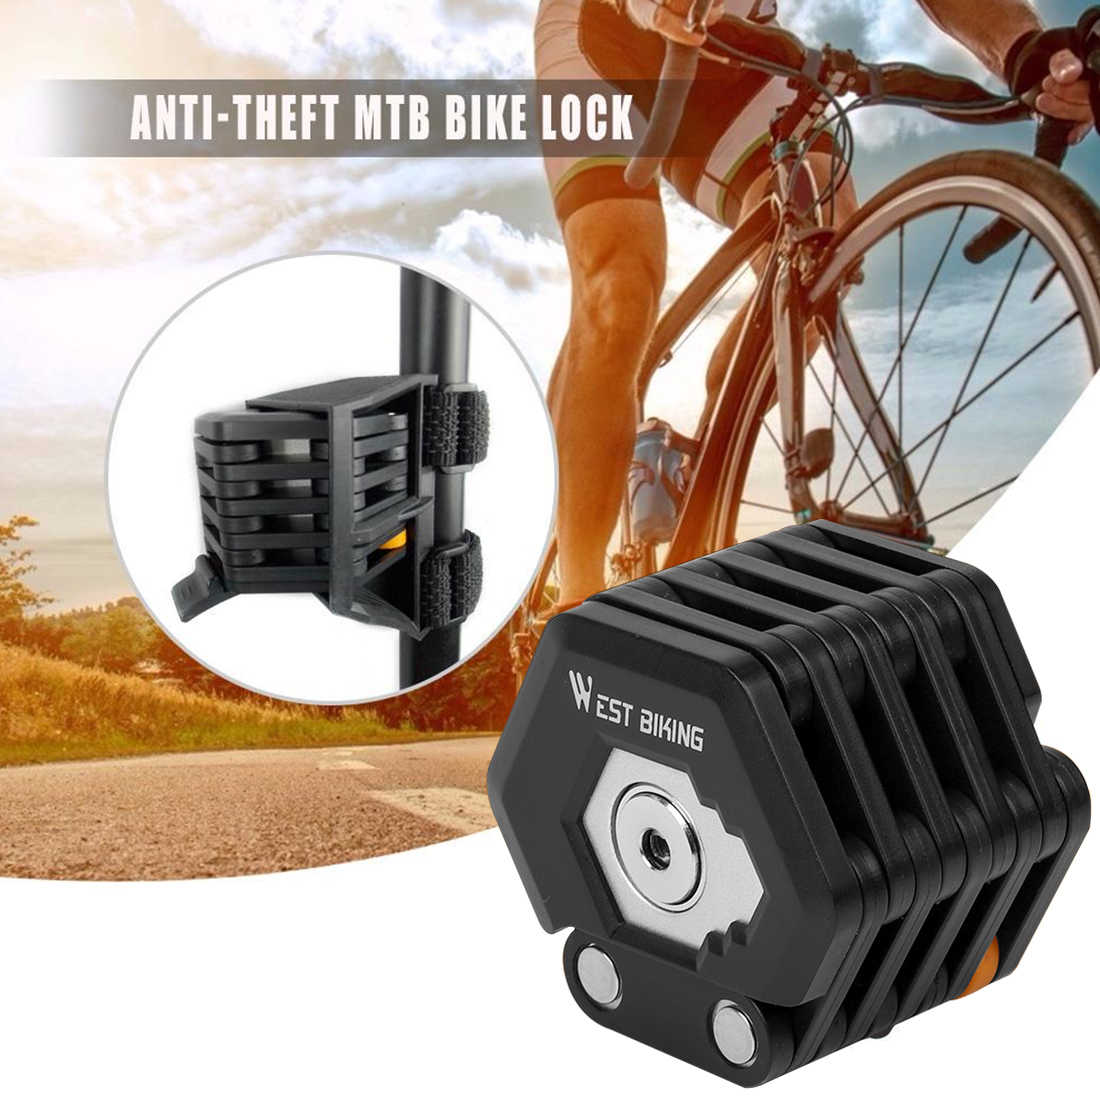 Durable Anti Thef Tlock Safety Lock Metal pvc Bicycle Accessories Wire Lock W